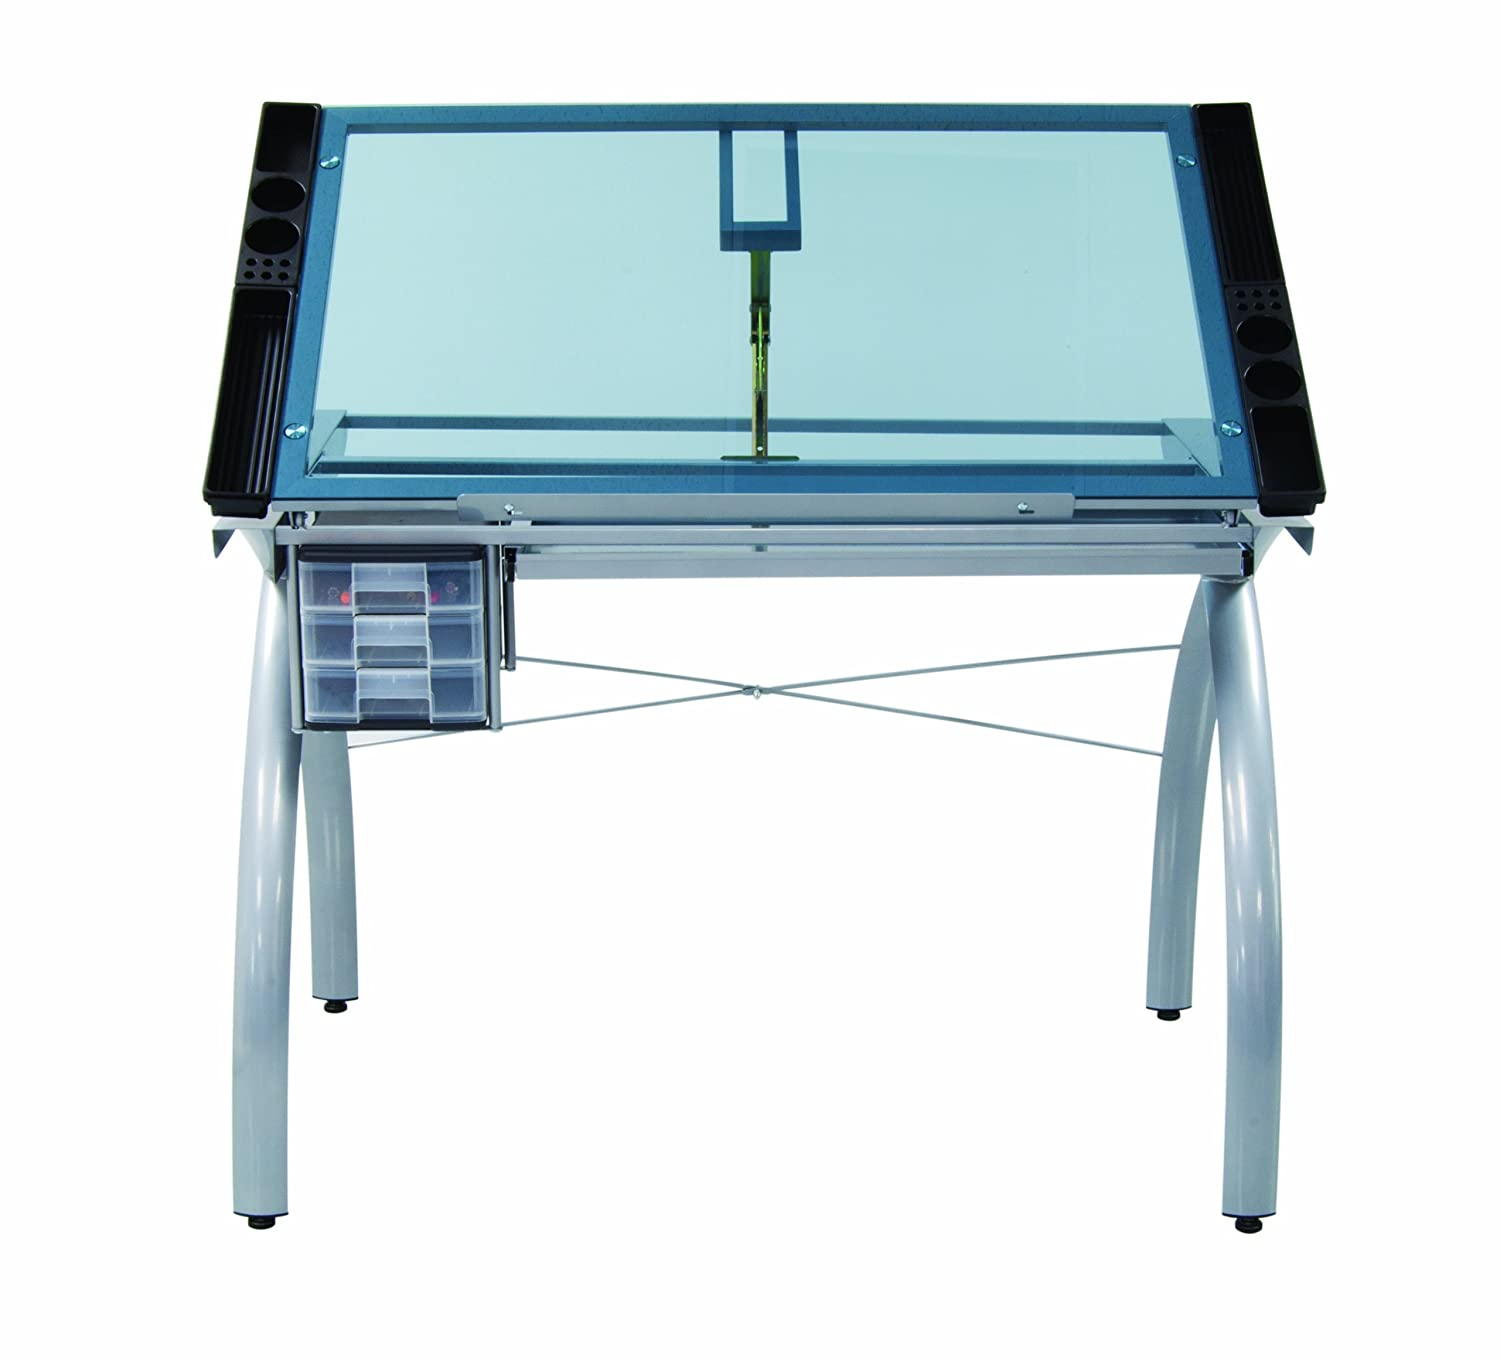 Studio designs futura craft station with glass top - Amazon Com Studio Designs 10050 Futura Craft Station Silver Blue Glass Arts Crafts Sewing